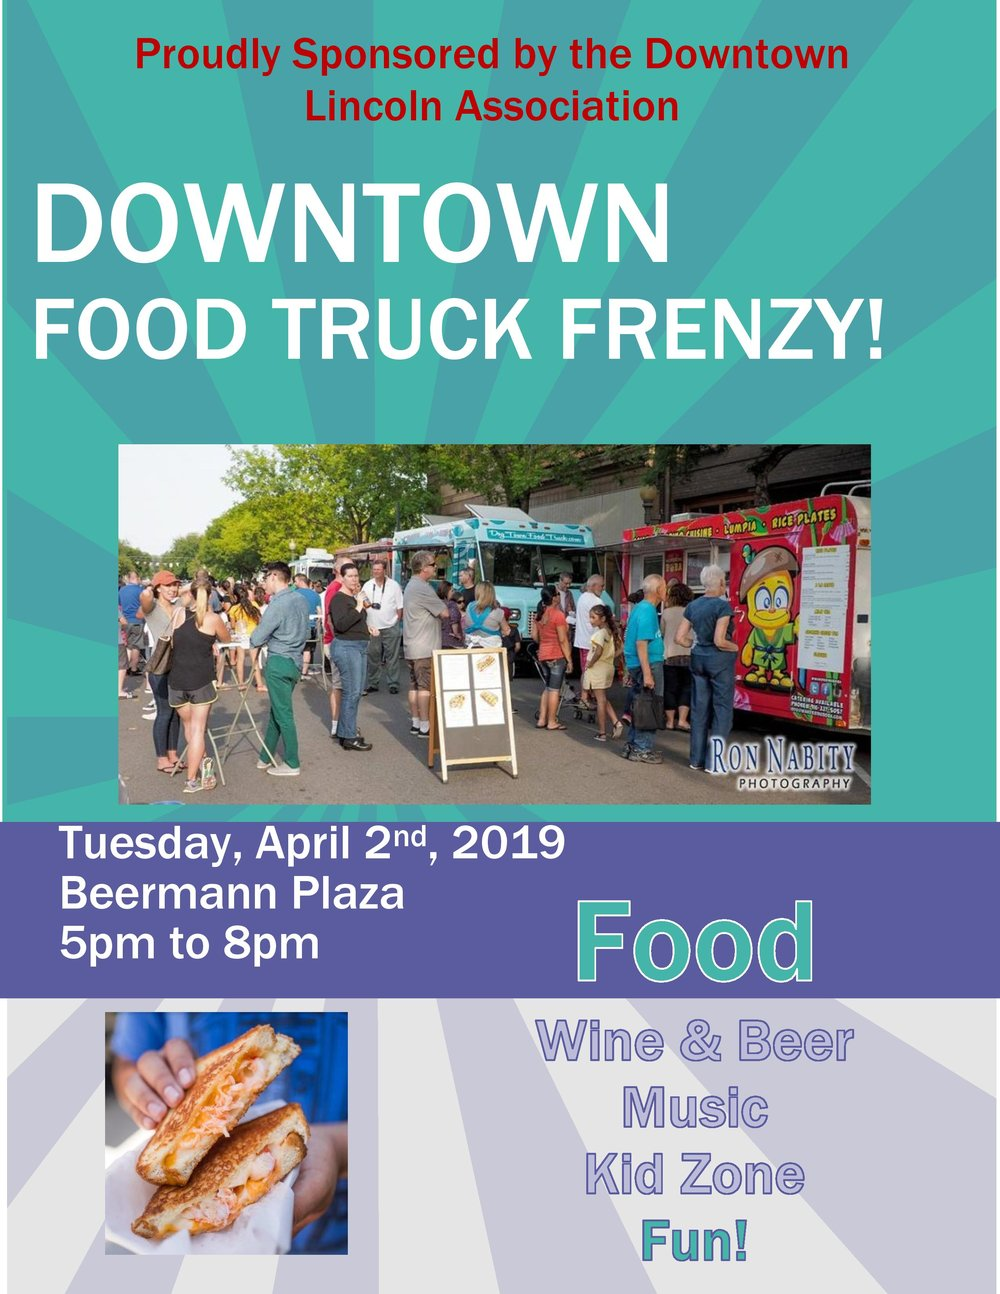 Food Truck Frenzy April 2, 2019.jpg